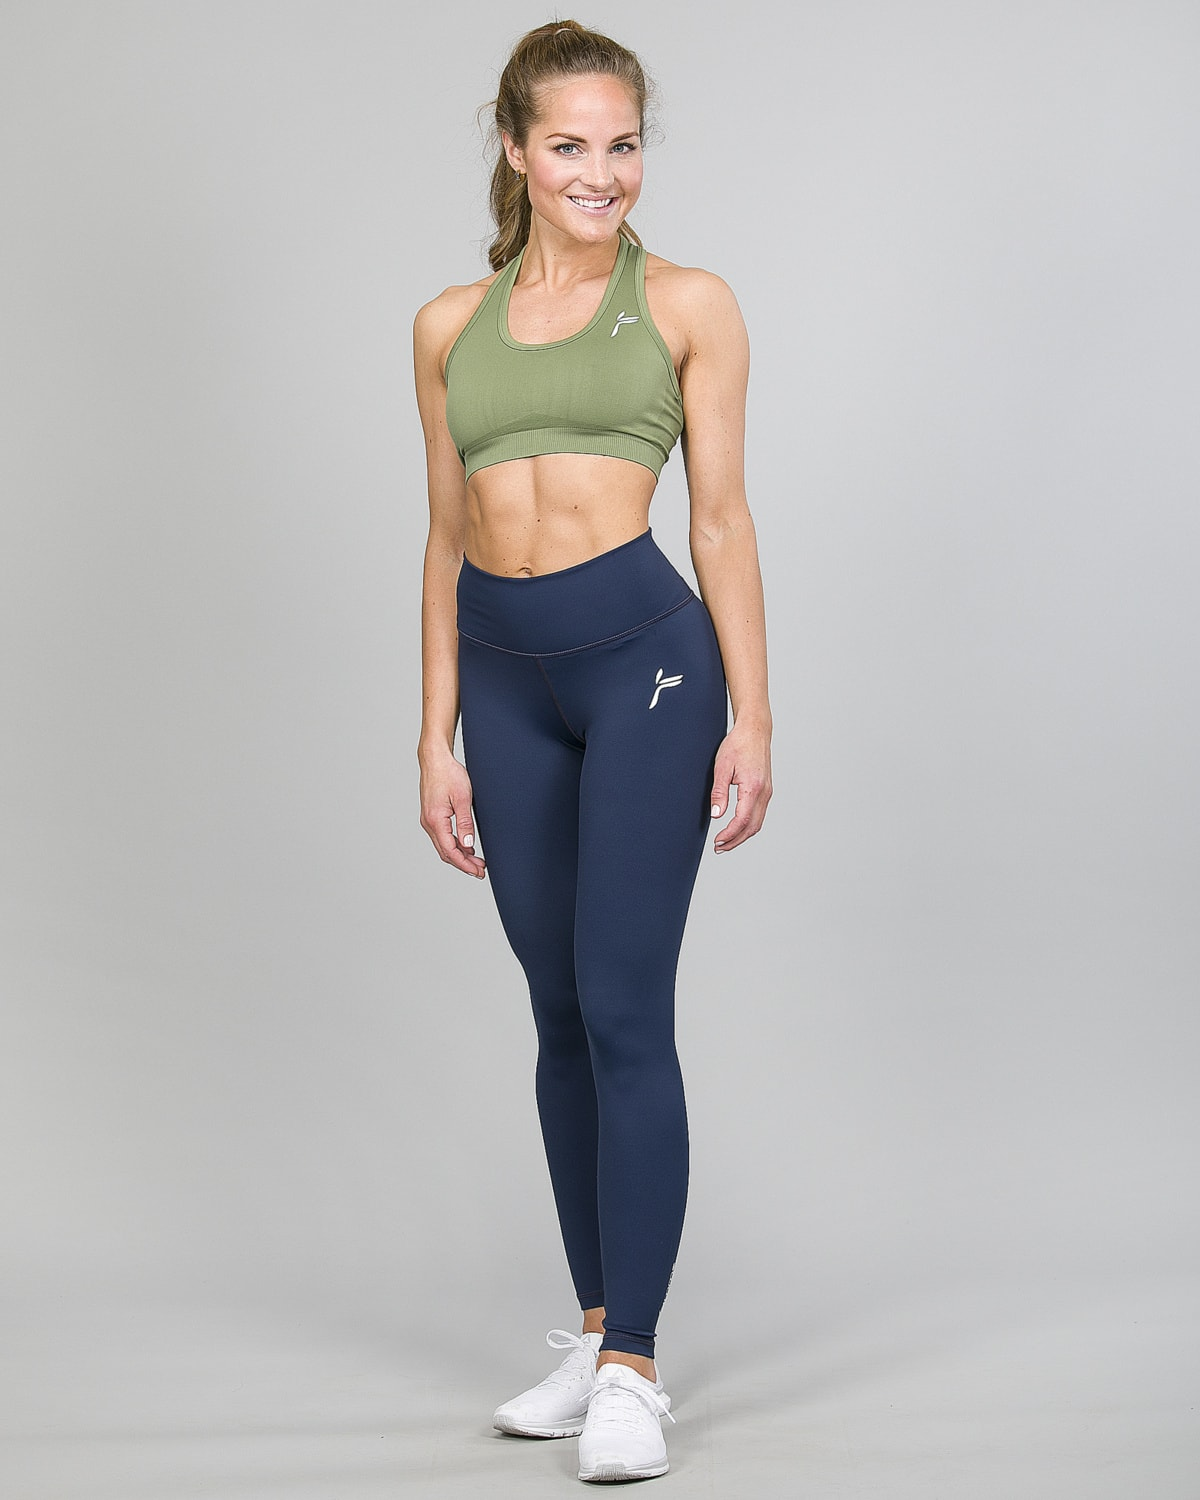 Famme Essential High Waist Legging – Midnight Blue ehwt-mb and Drop It Sports Bra Army Green vhwl-ag d